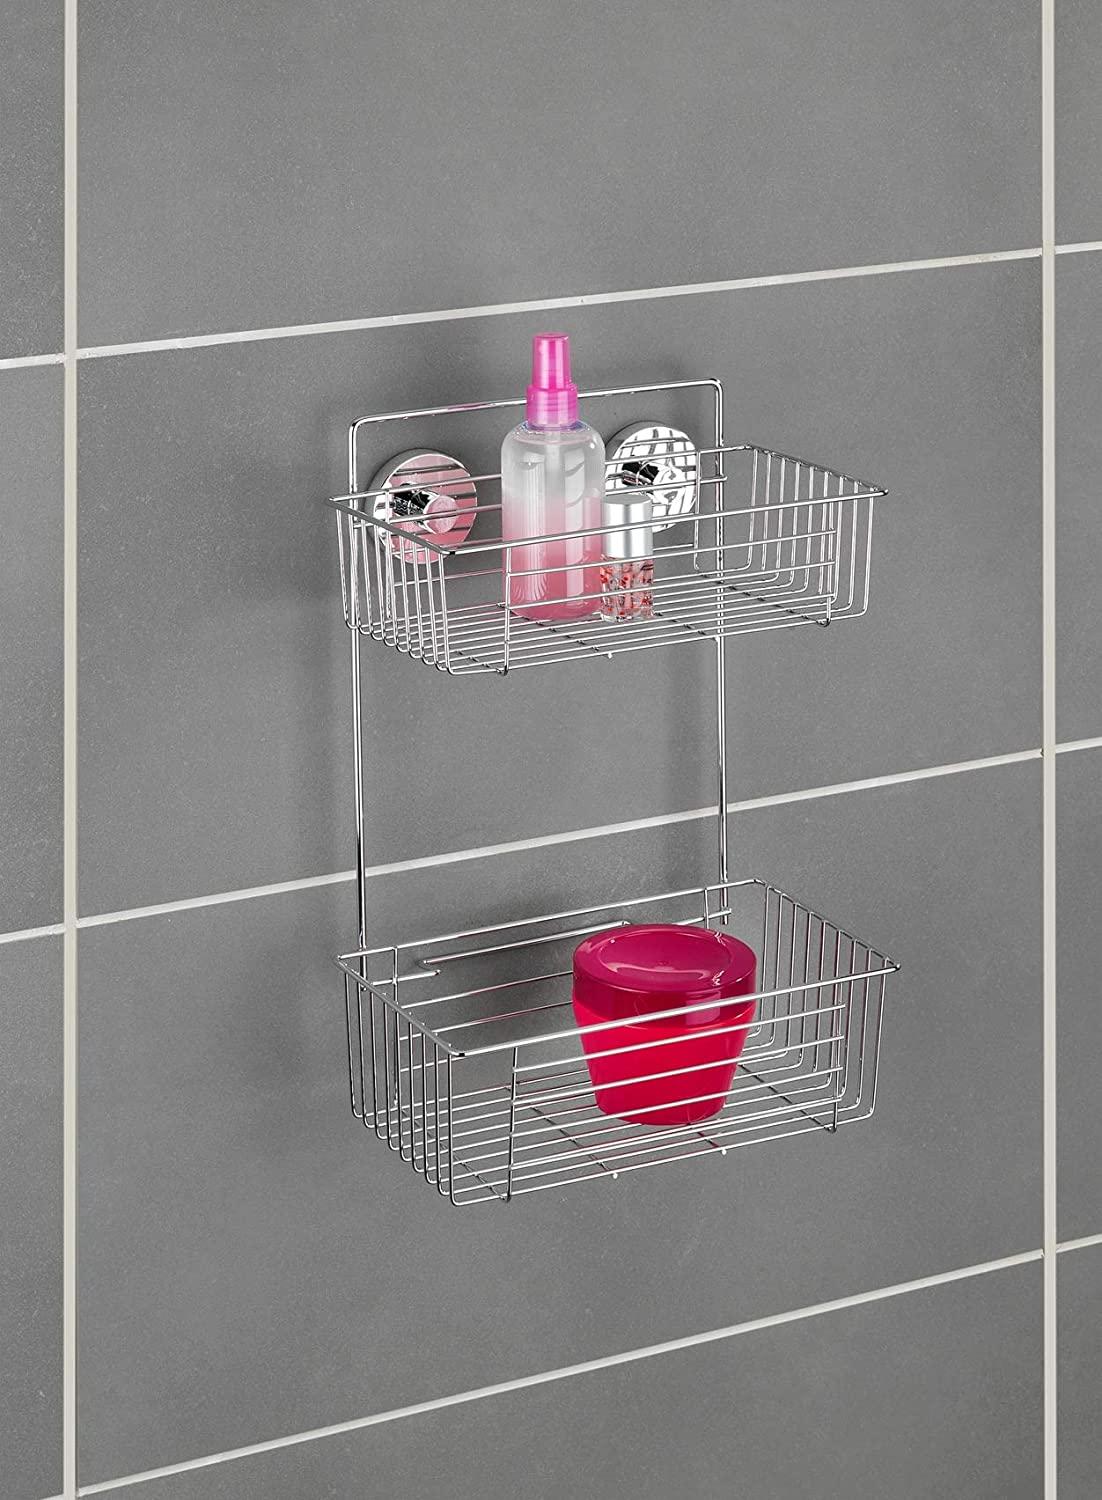 WENKO 20889100 Vacuum-Loc 2-Tier wall rack Bari fixing without drilling 10.2 x 15 x 6.7 inch Chrome Steel